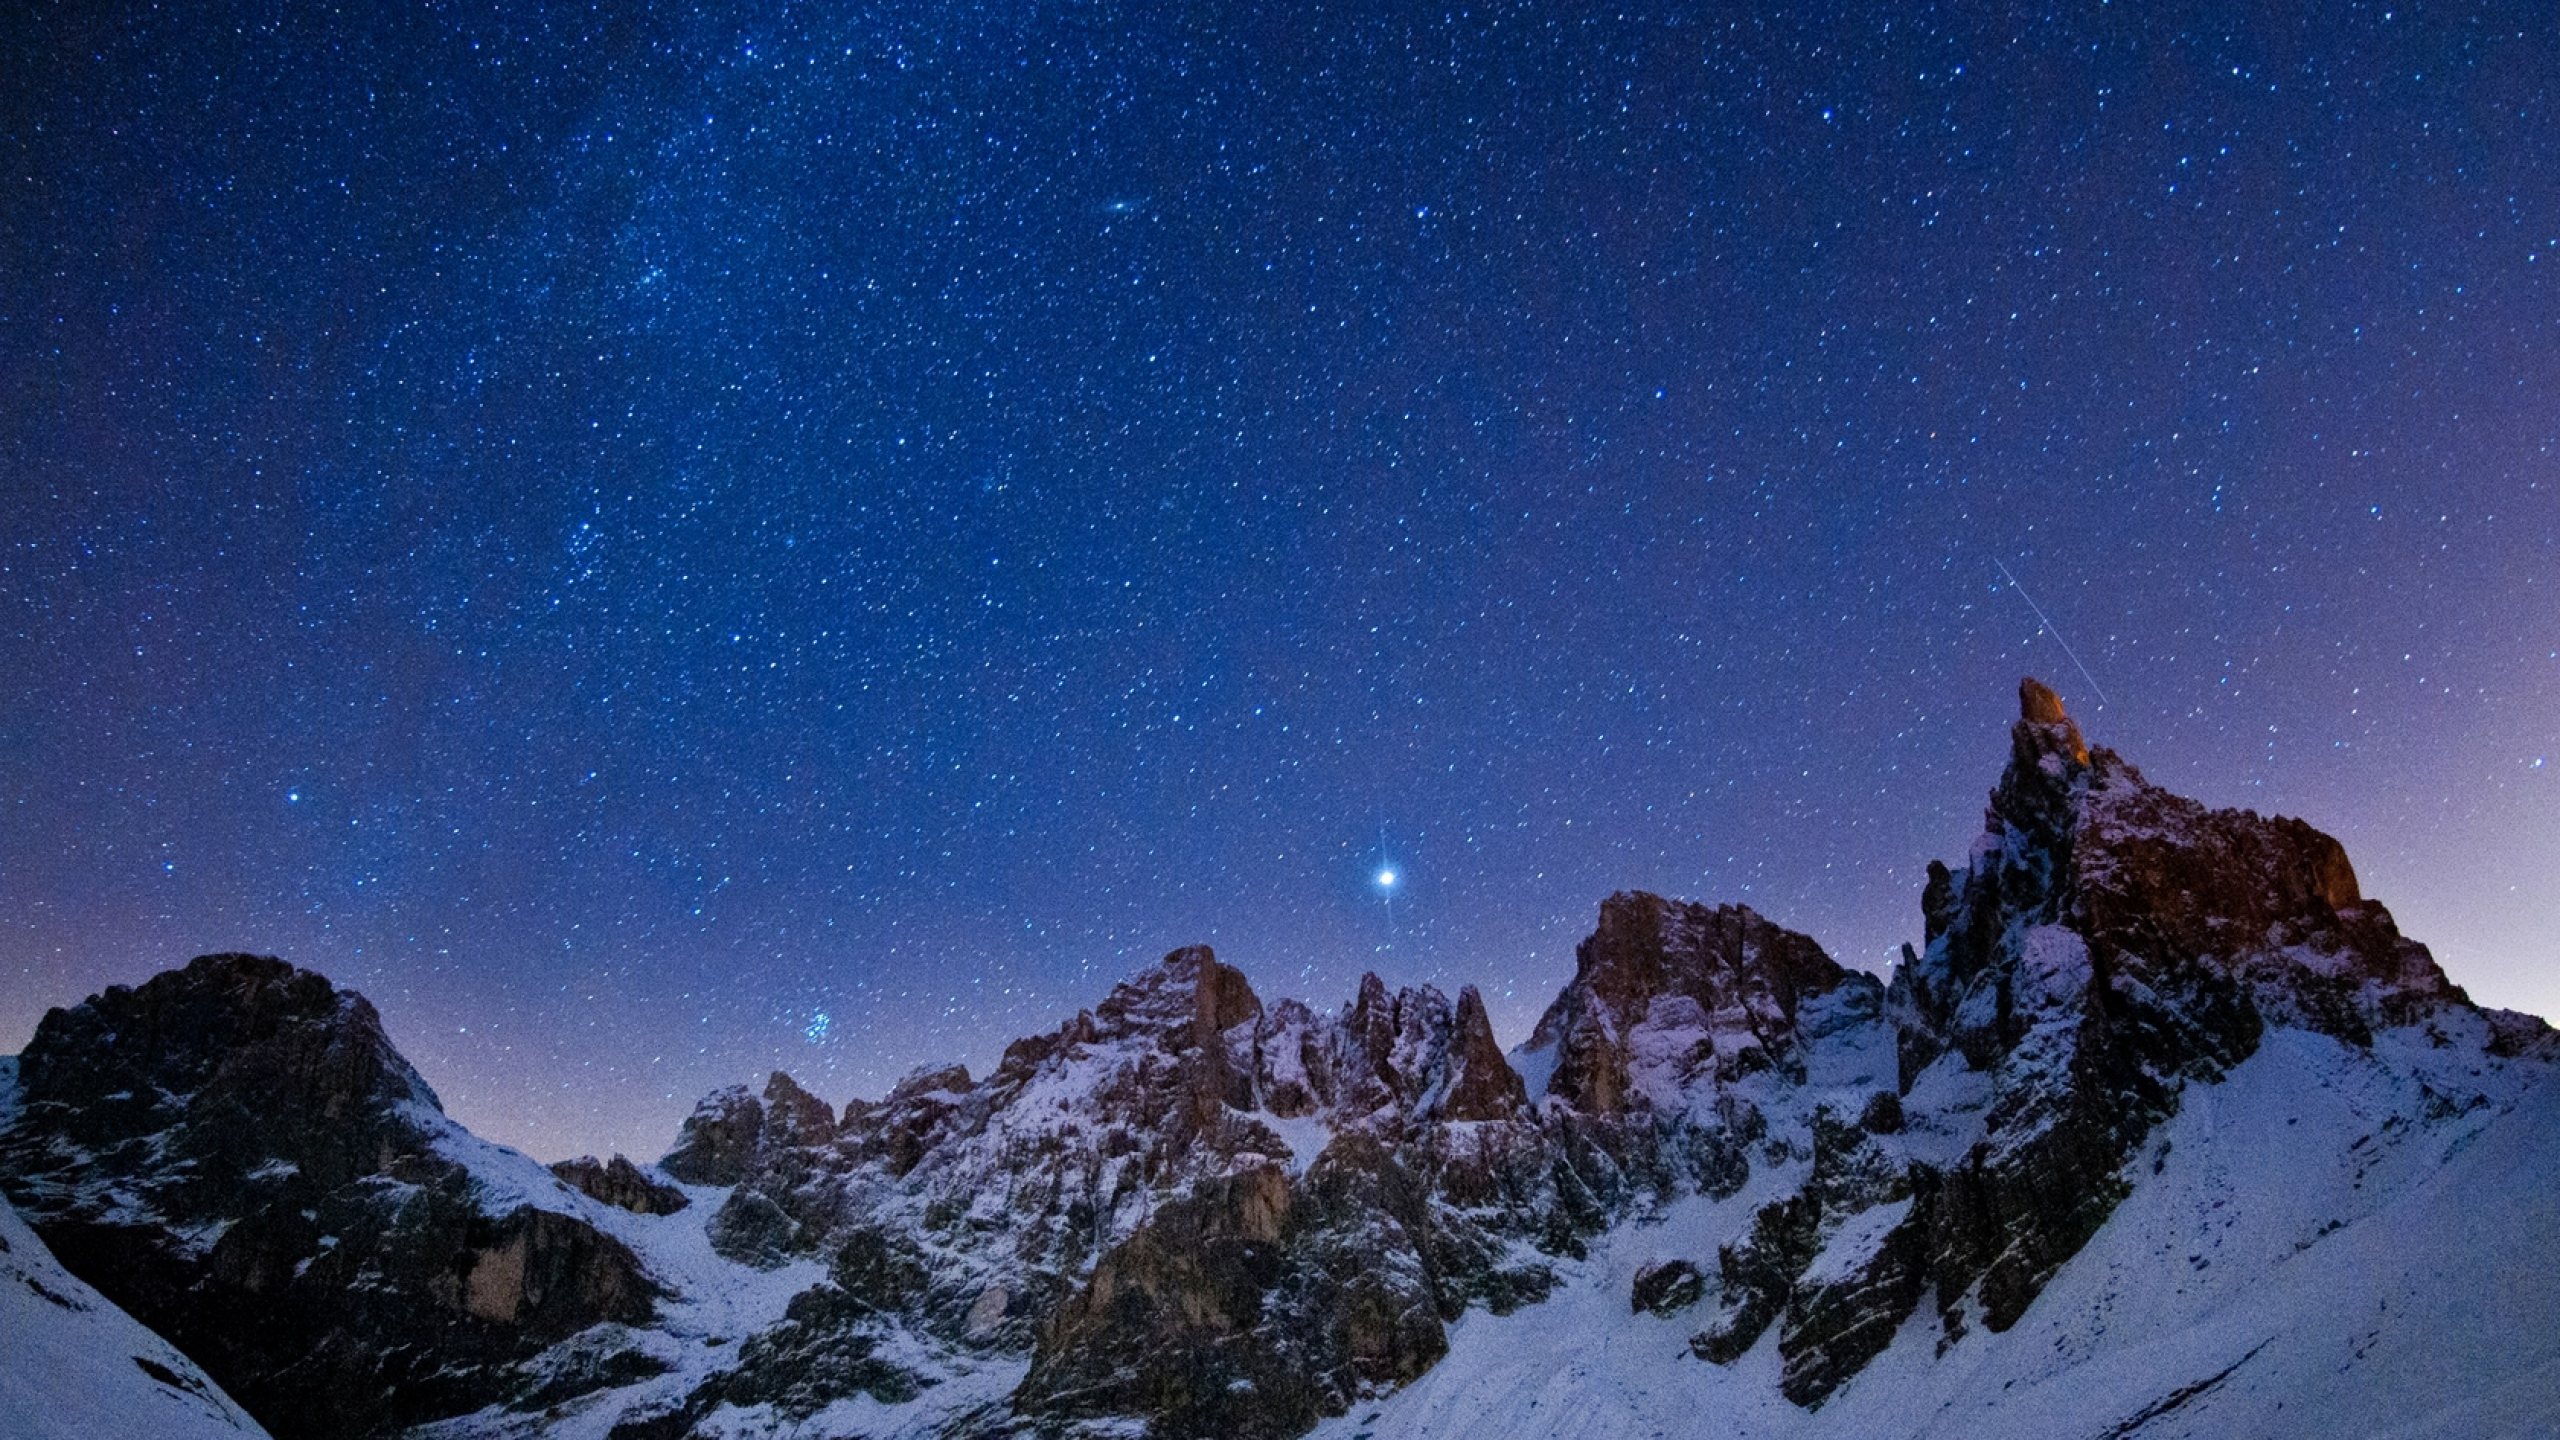 Download Wallpaper 2560x1440 Mountains Sky Night Stars 2560x1440